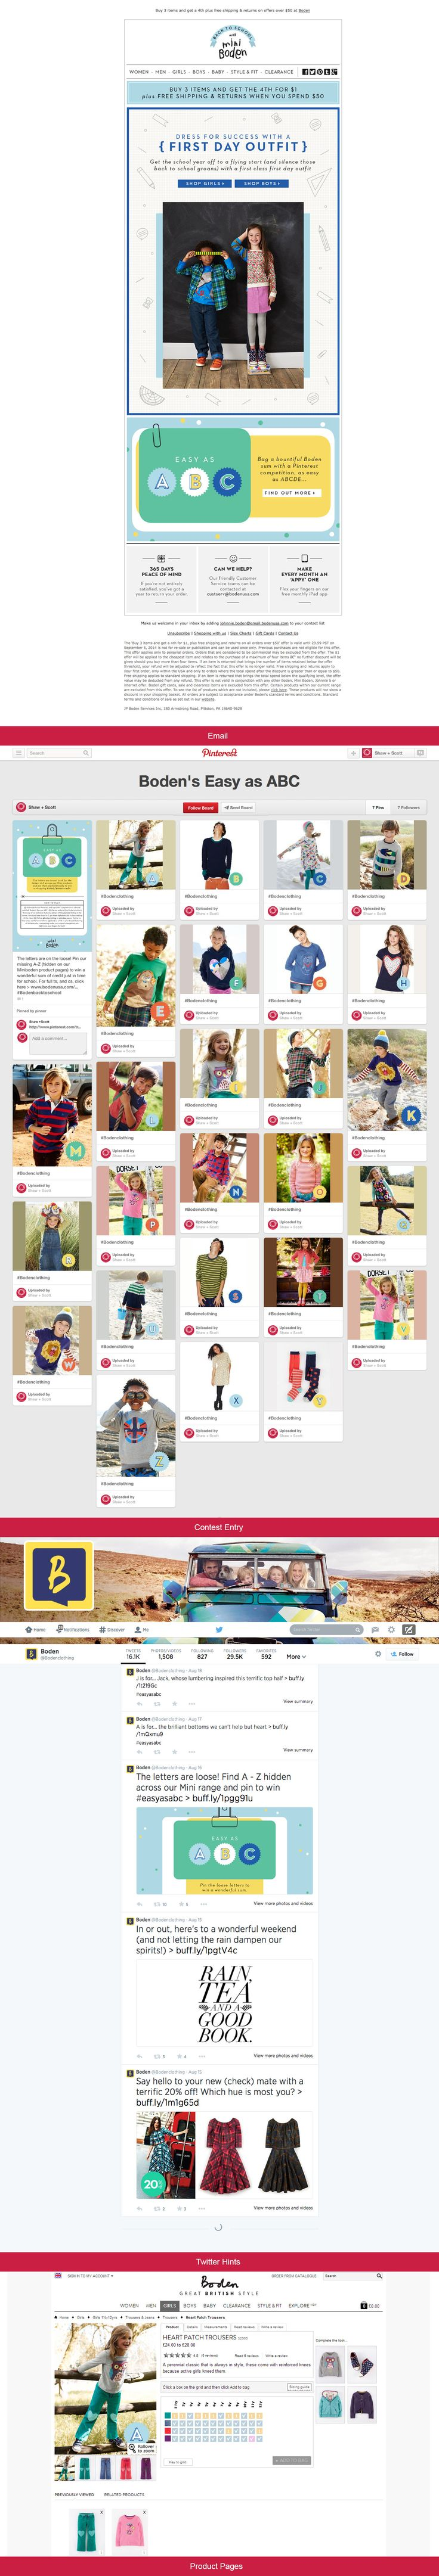 "This cross-channel ""Boden's Easy as ABC"" campaign is all about cleverly leveraging pinterest, twitter, web and email to engage the customer. Users create their own pinterest board and pin the missing A-Z letters (hidden on Miniboden product pages) to win a wonderful sum of credit. Plus, you can follow Boden's twitter site for hints. What a great way to add engagment and interest across all these social channels not to mention getting customers browsing and purchasing on their site."